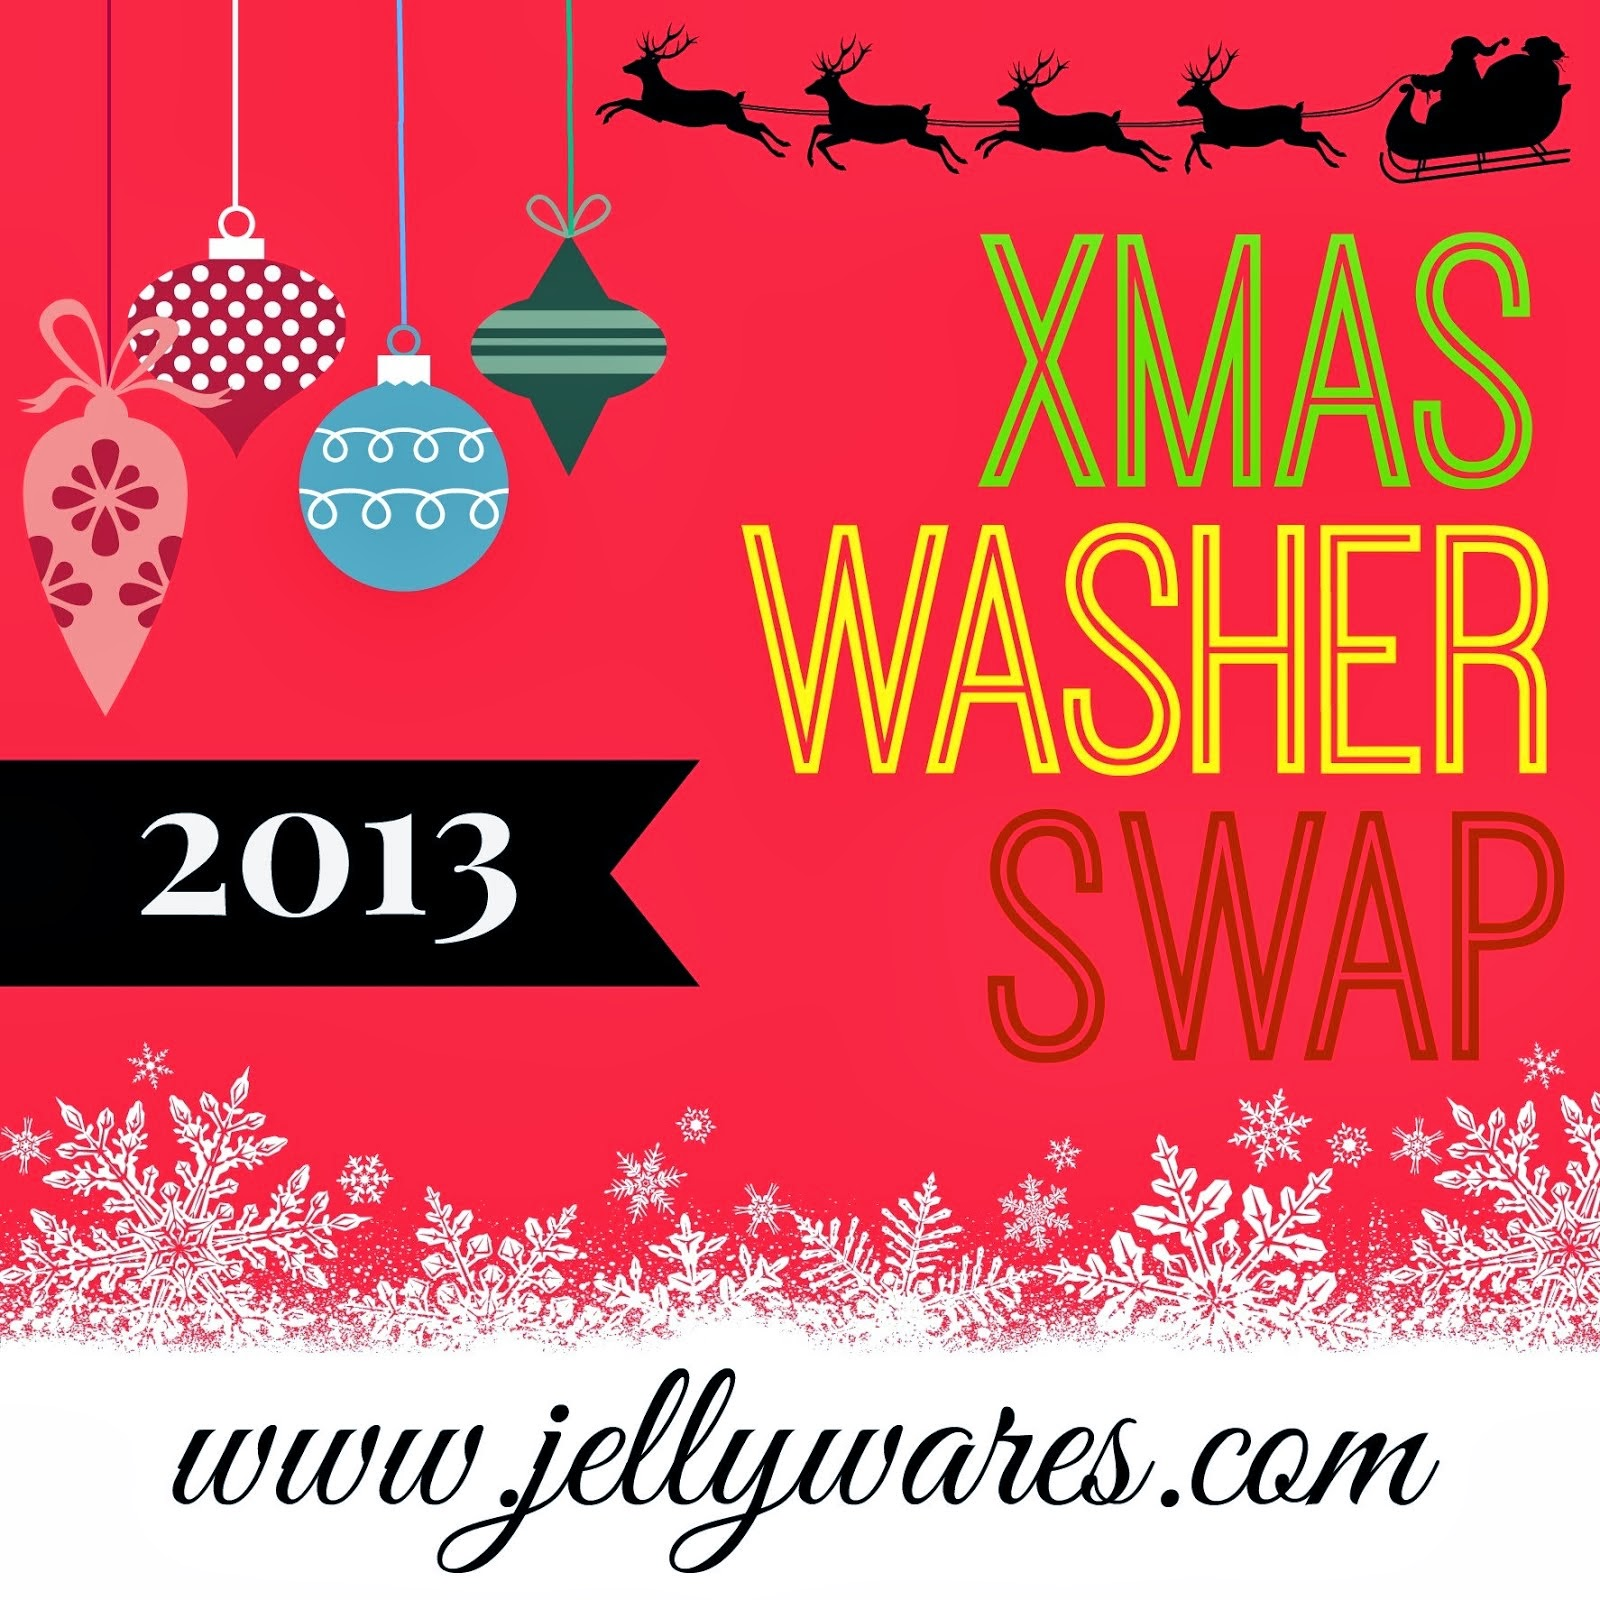 Christmas Washer Swap 2013